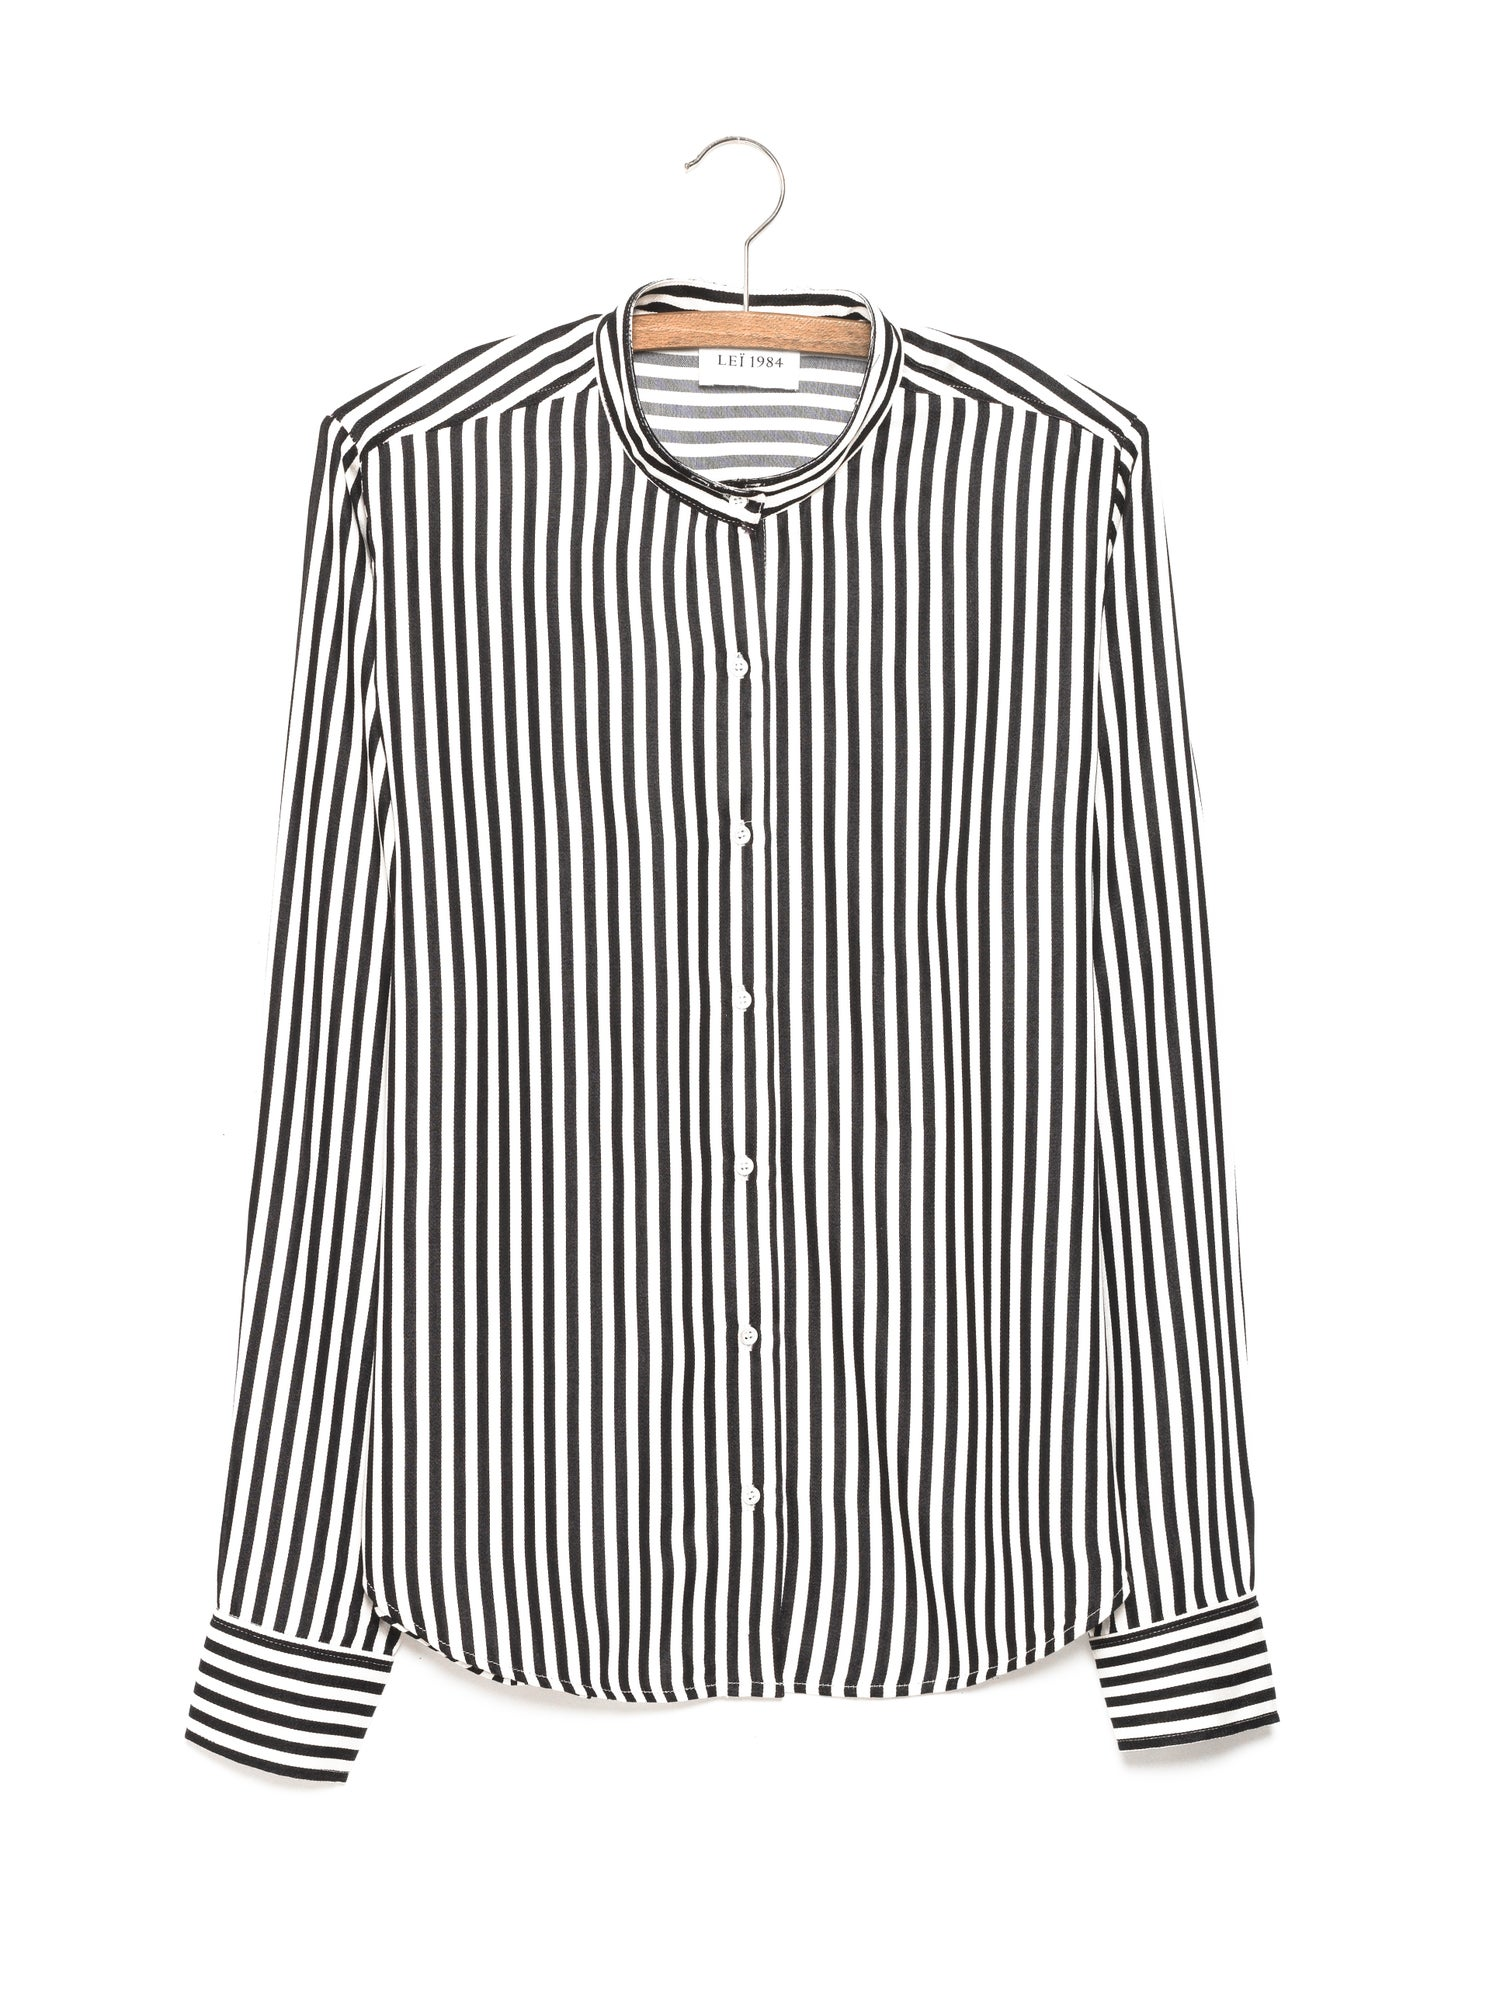 Image of Chemise col mao rayée ANNE 115€ -50%